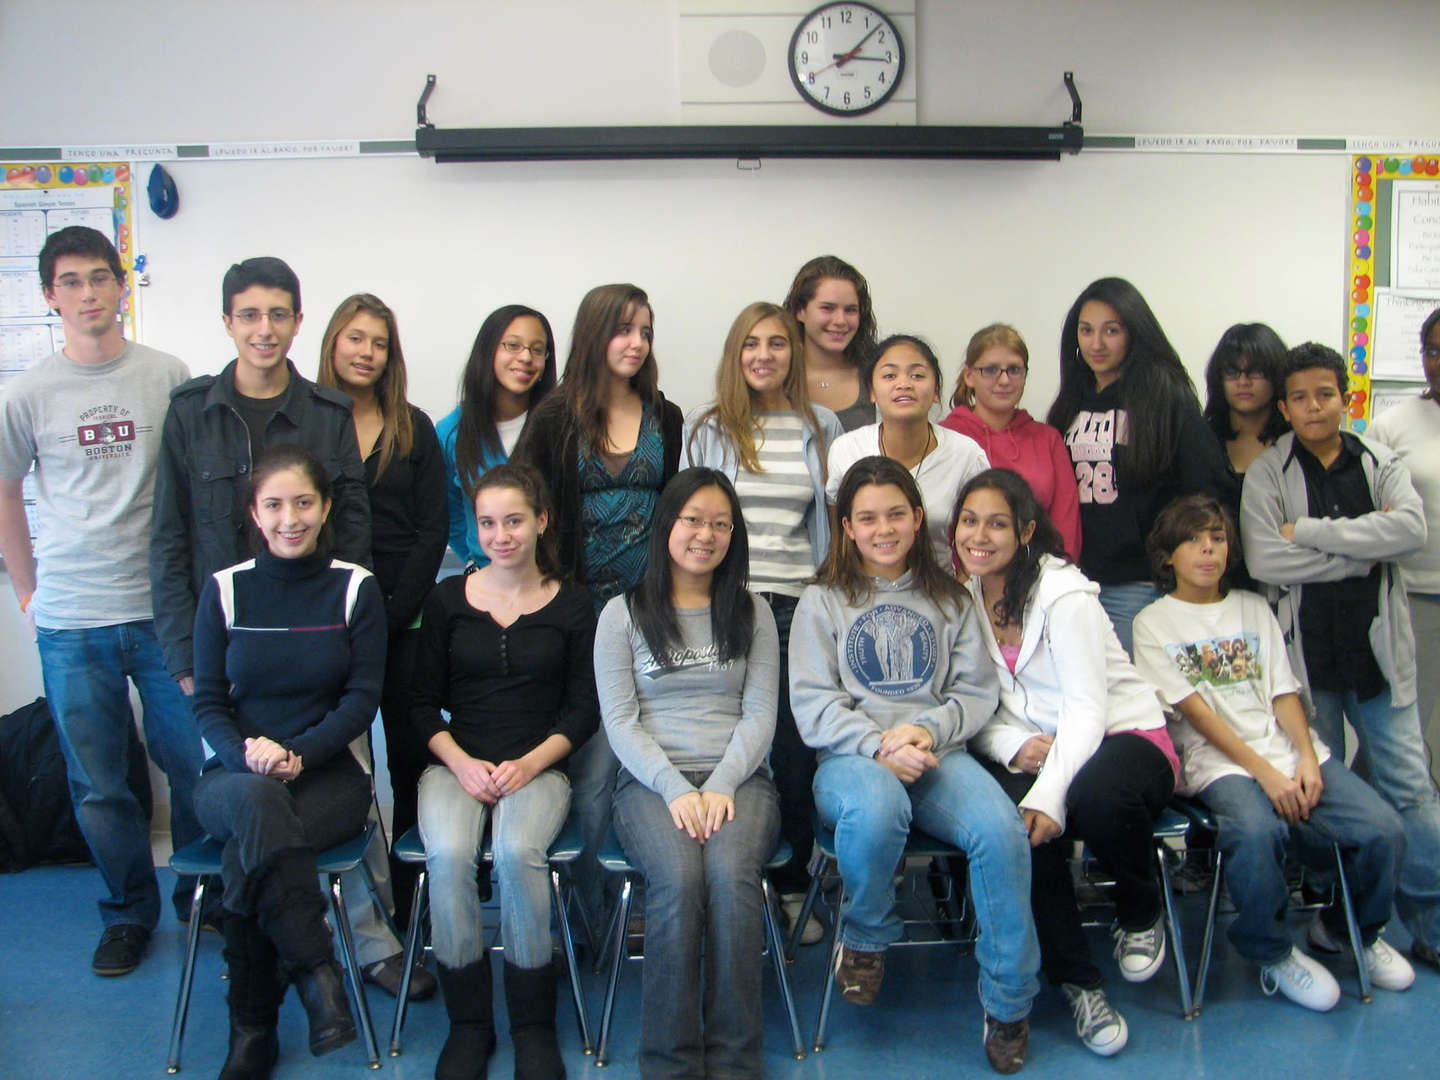 A group of students posing at the front of a classroom